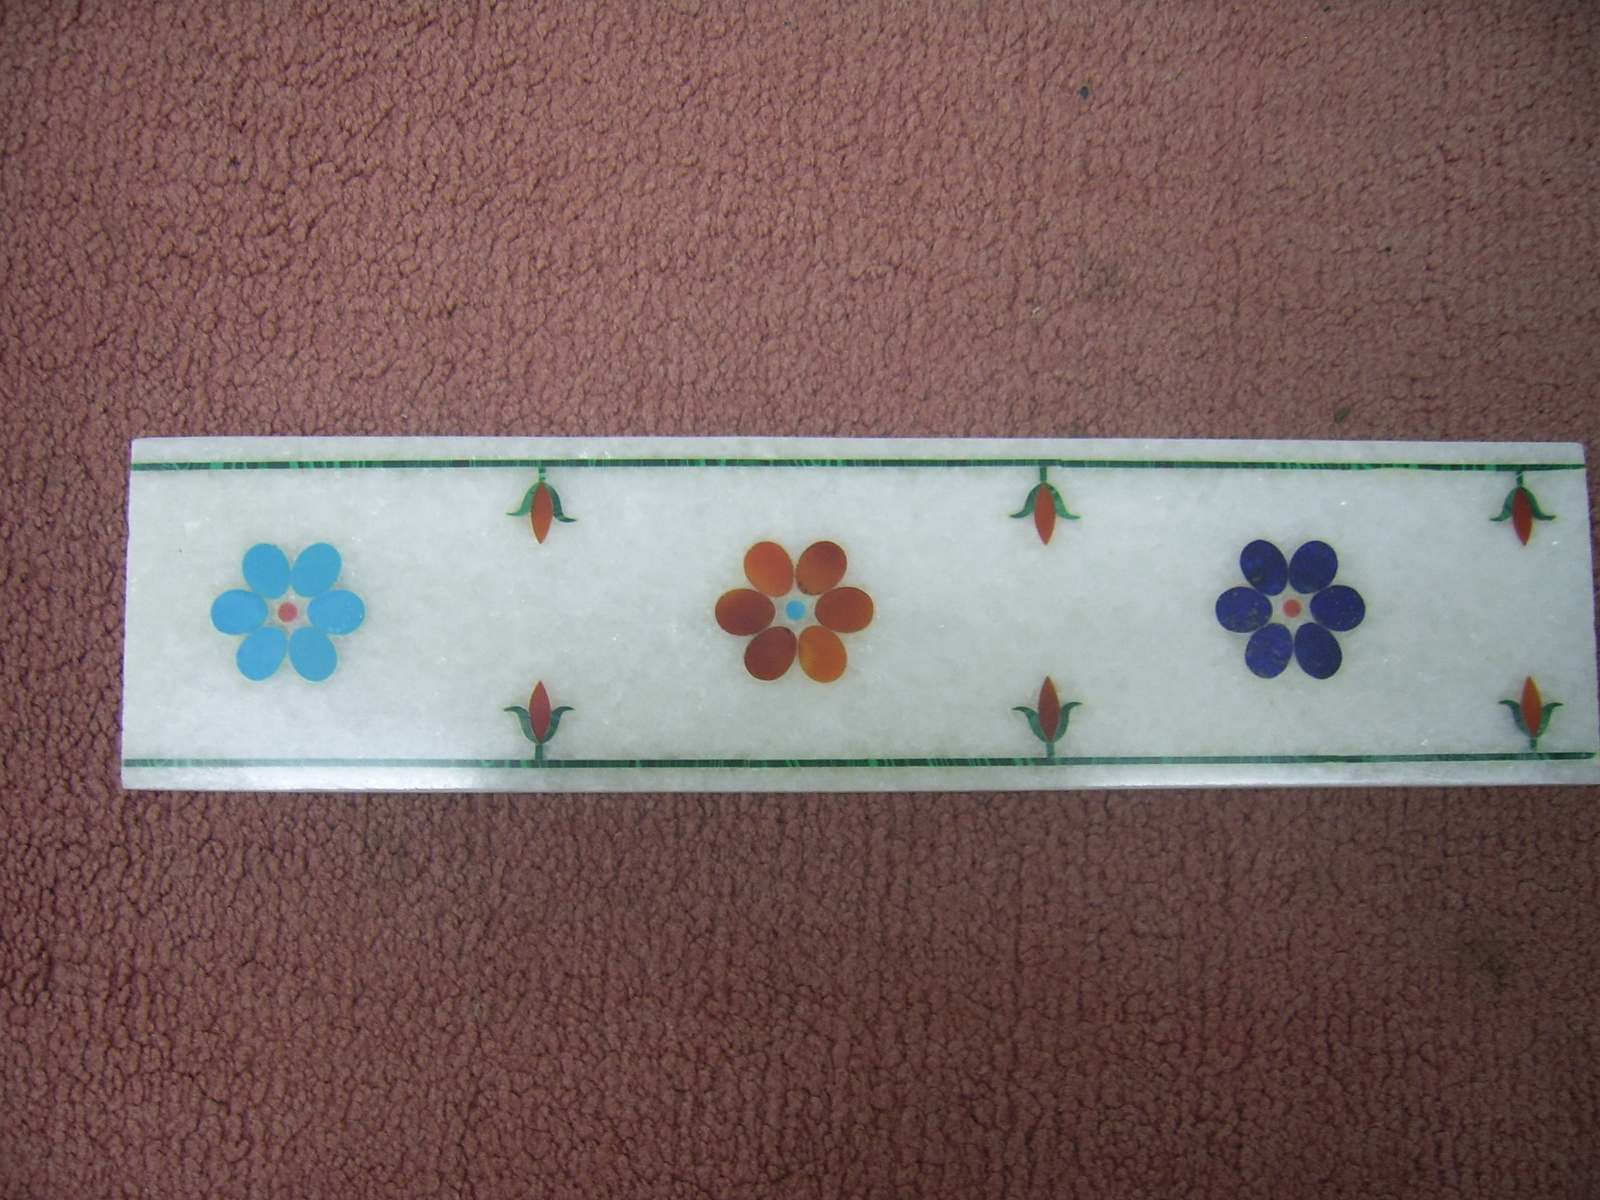 White Marble Inlaid Dining Table Tops Tiles Borders Art and